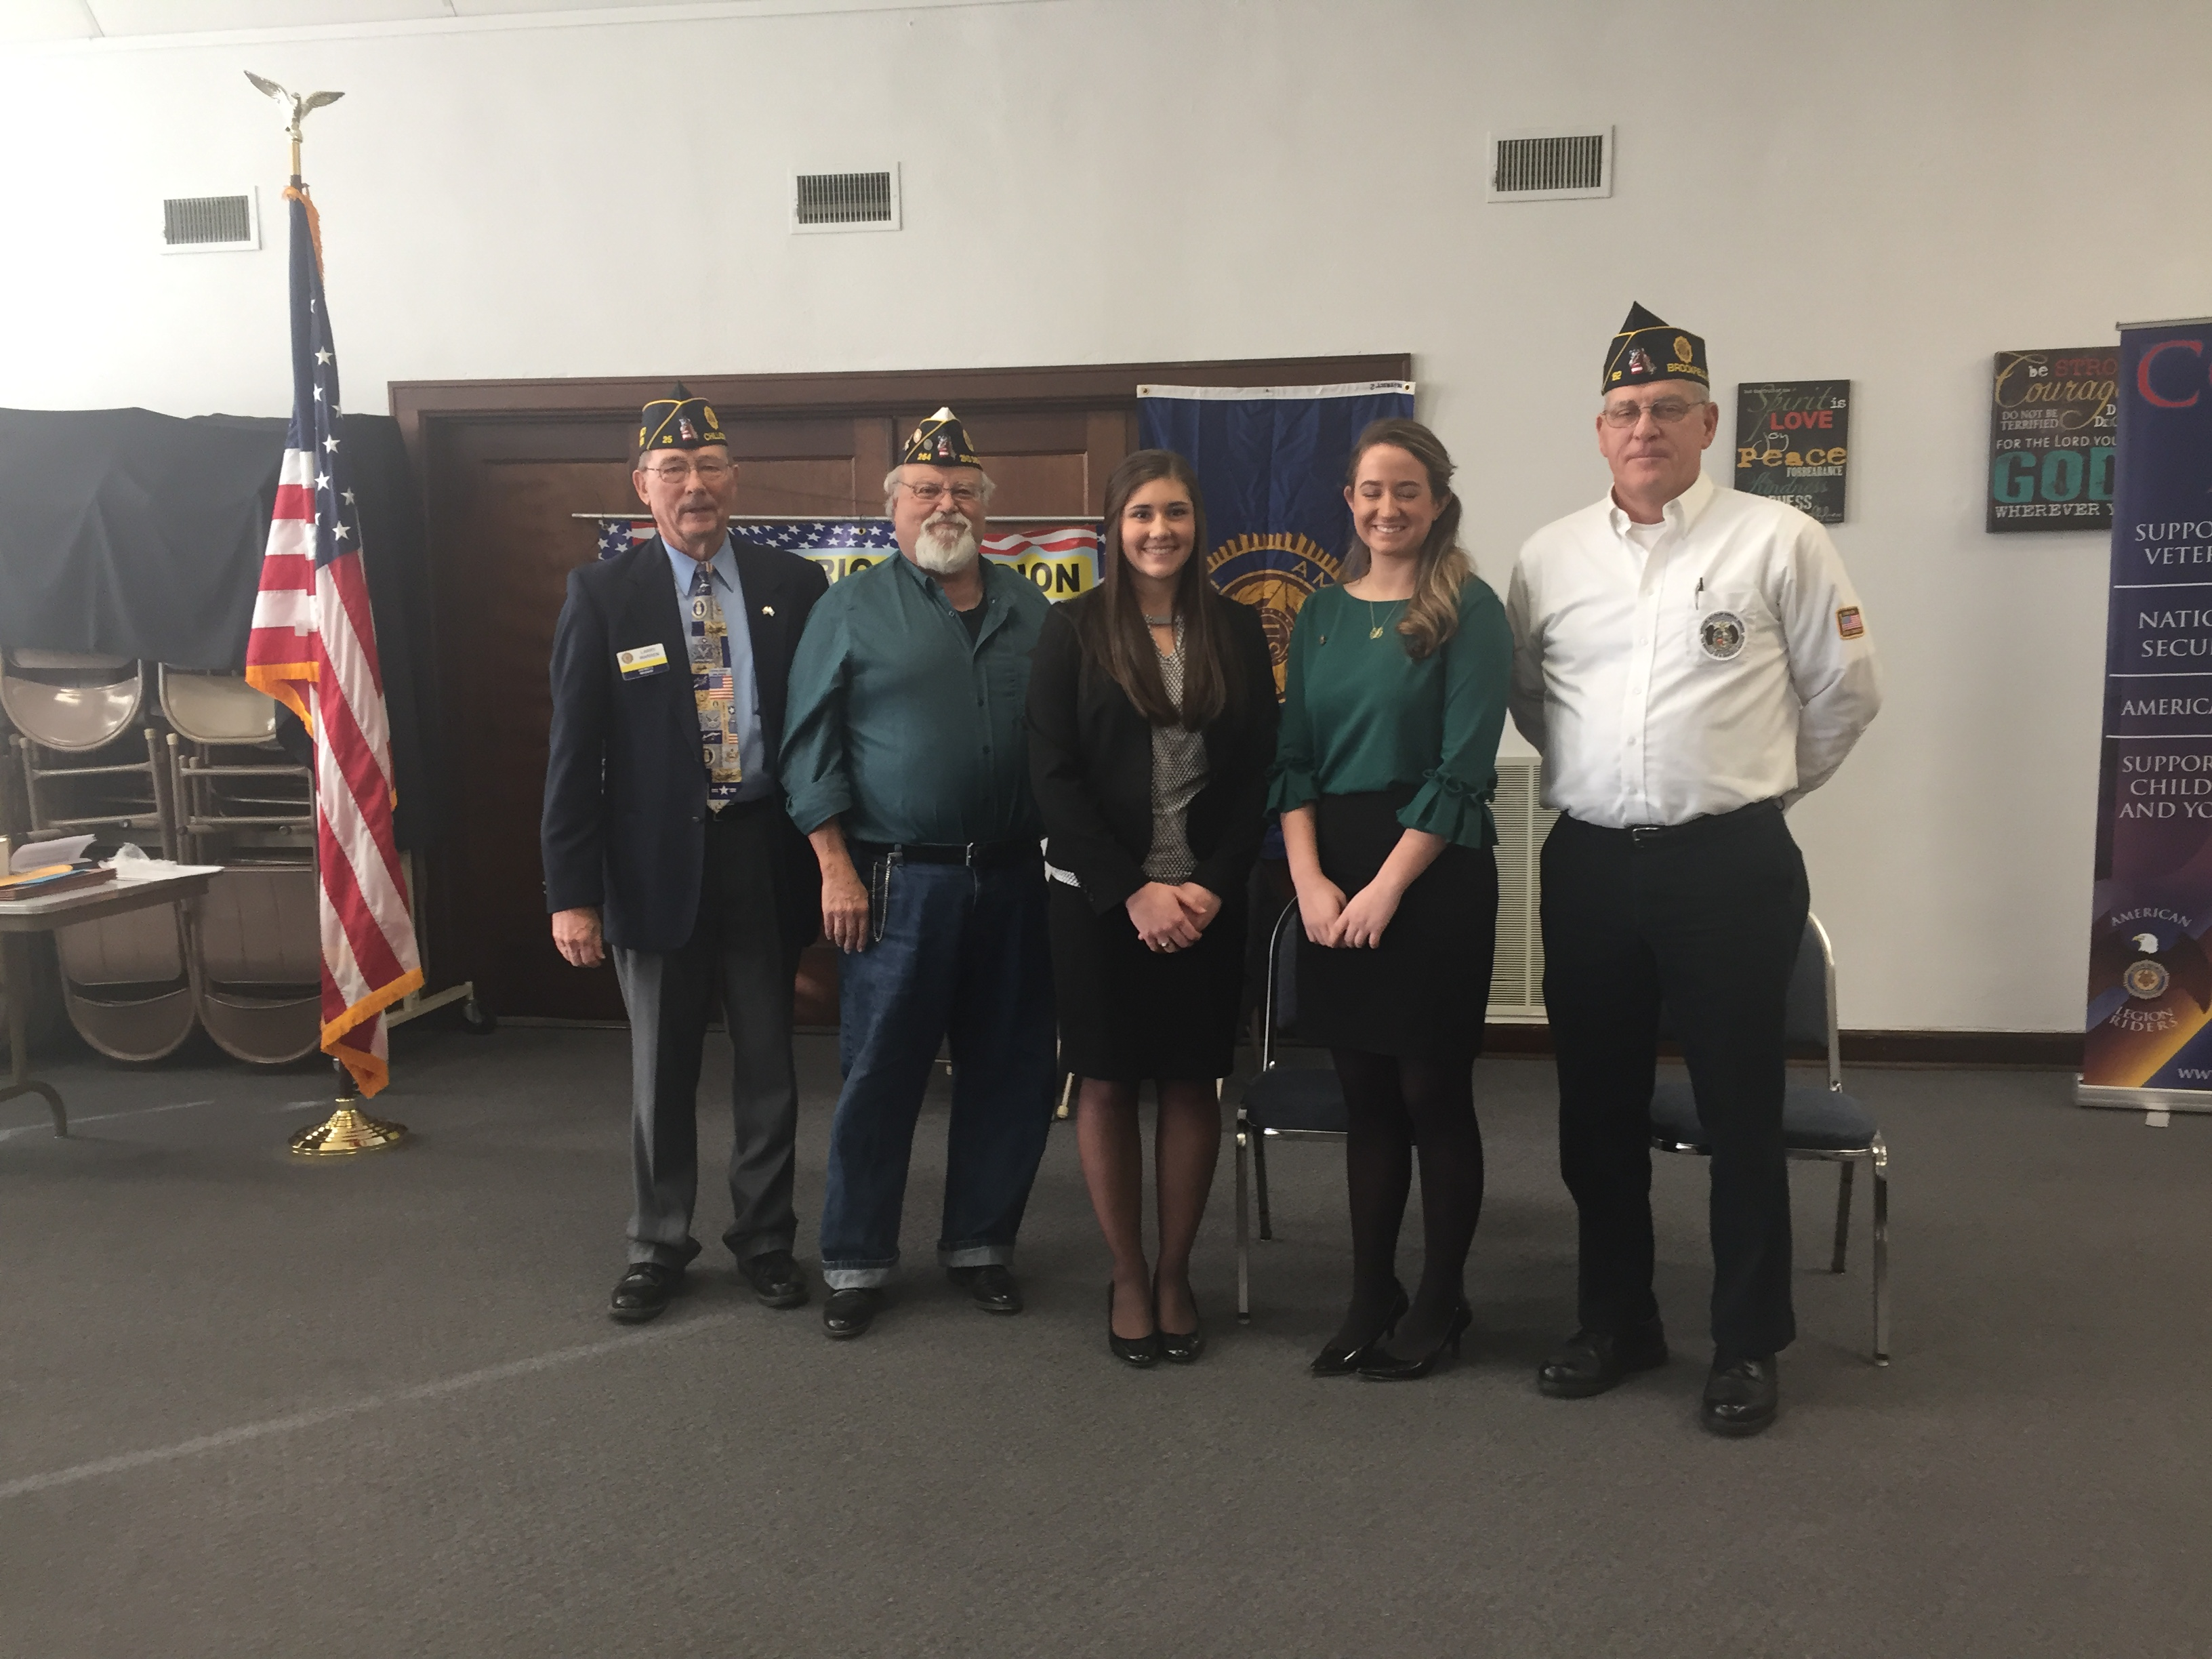 Norborne student wins district American Legion Oratorical contest, moves on to regional contest